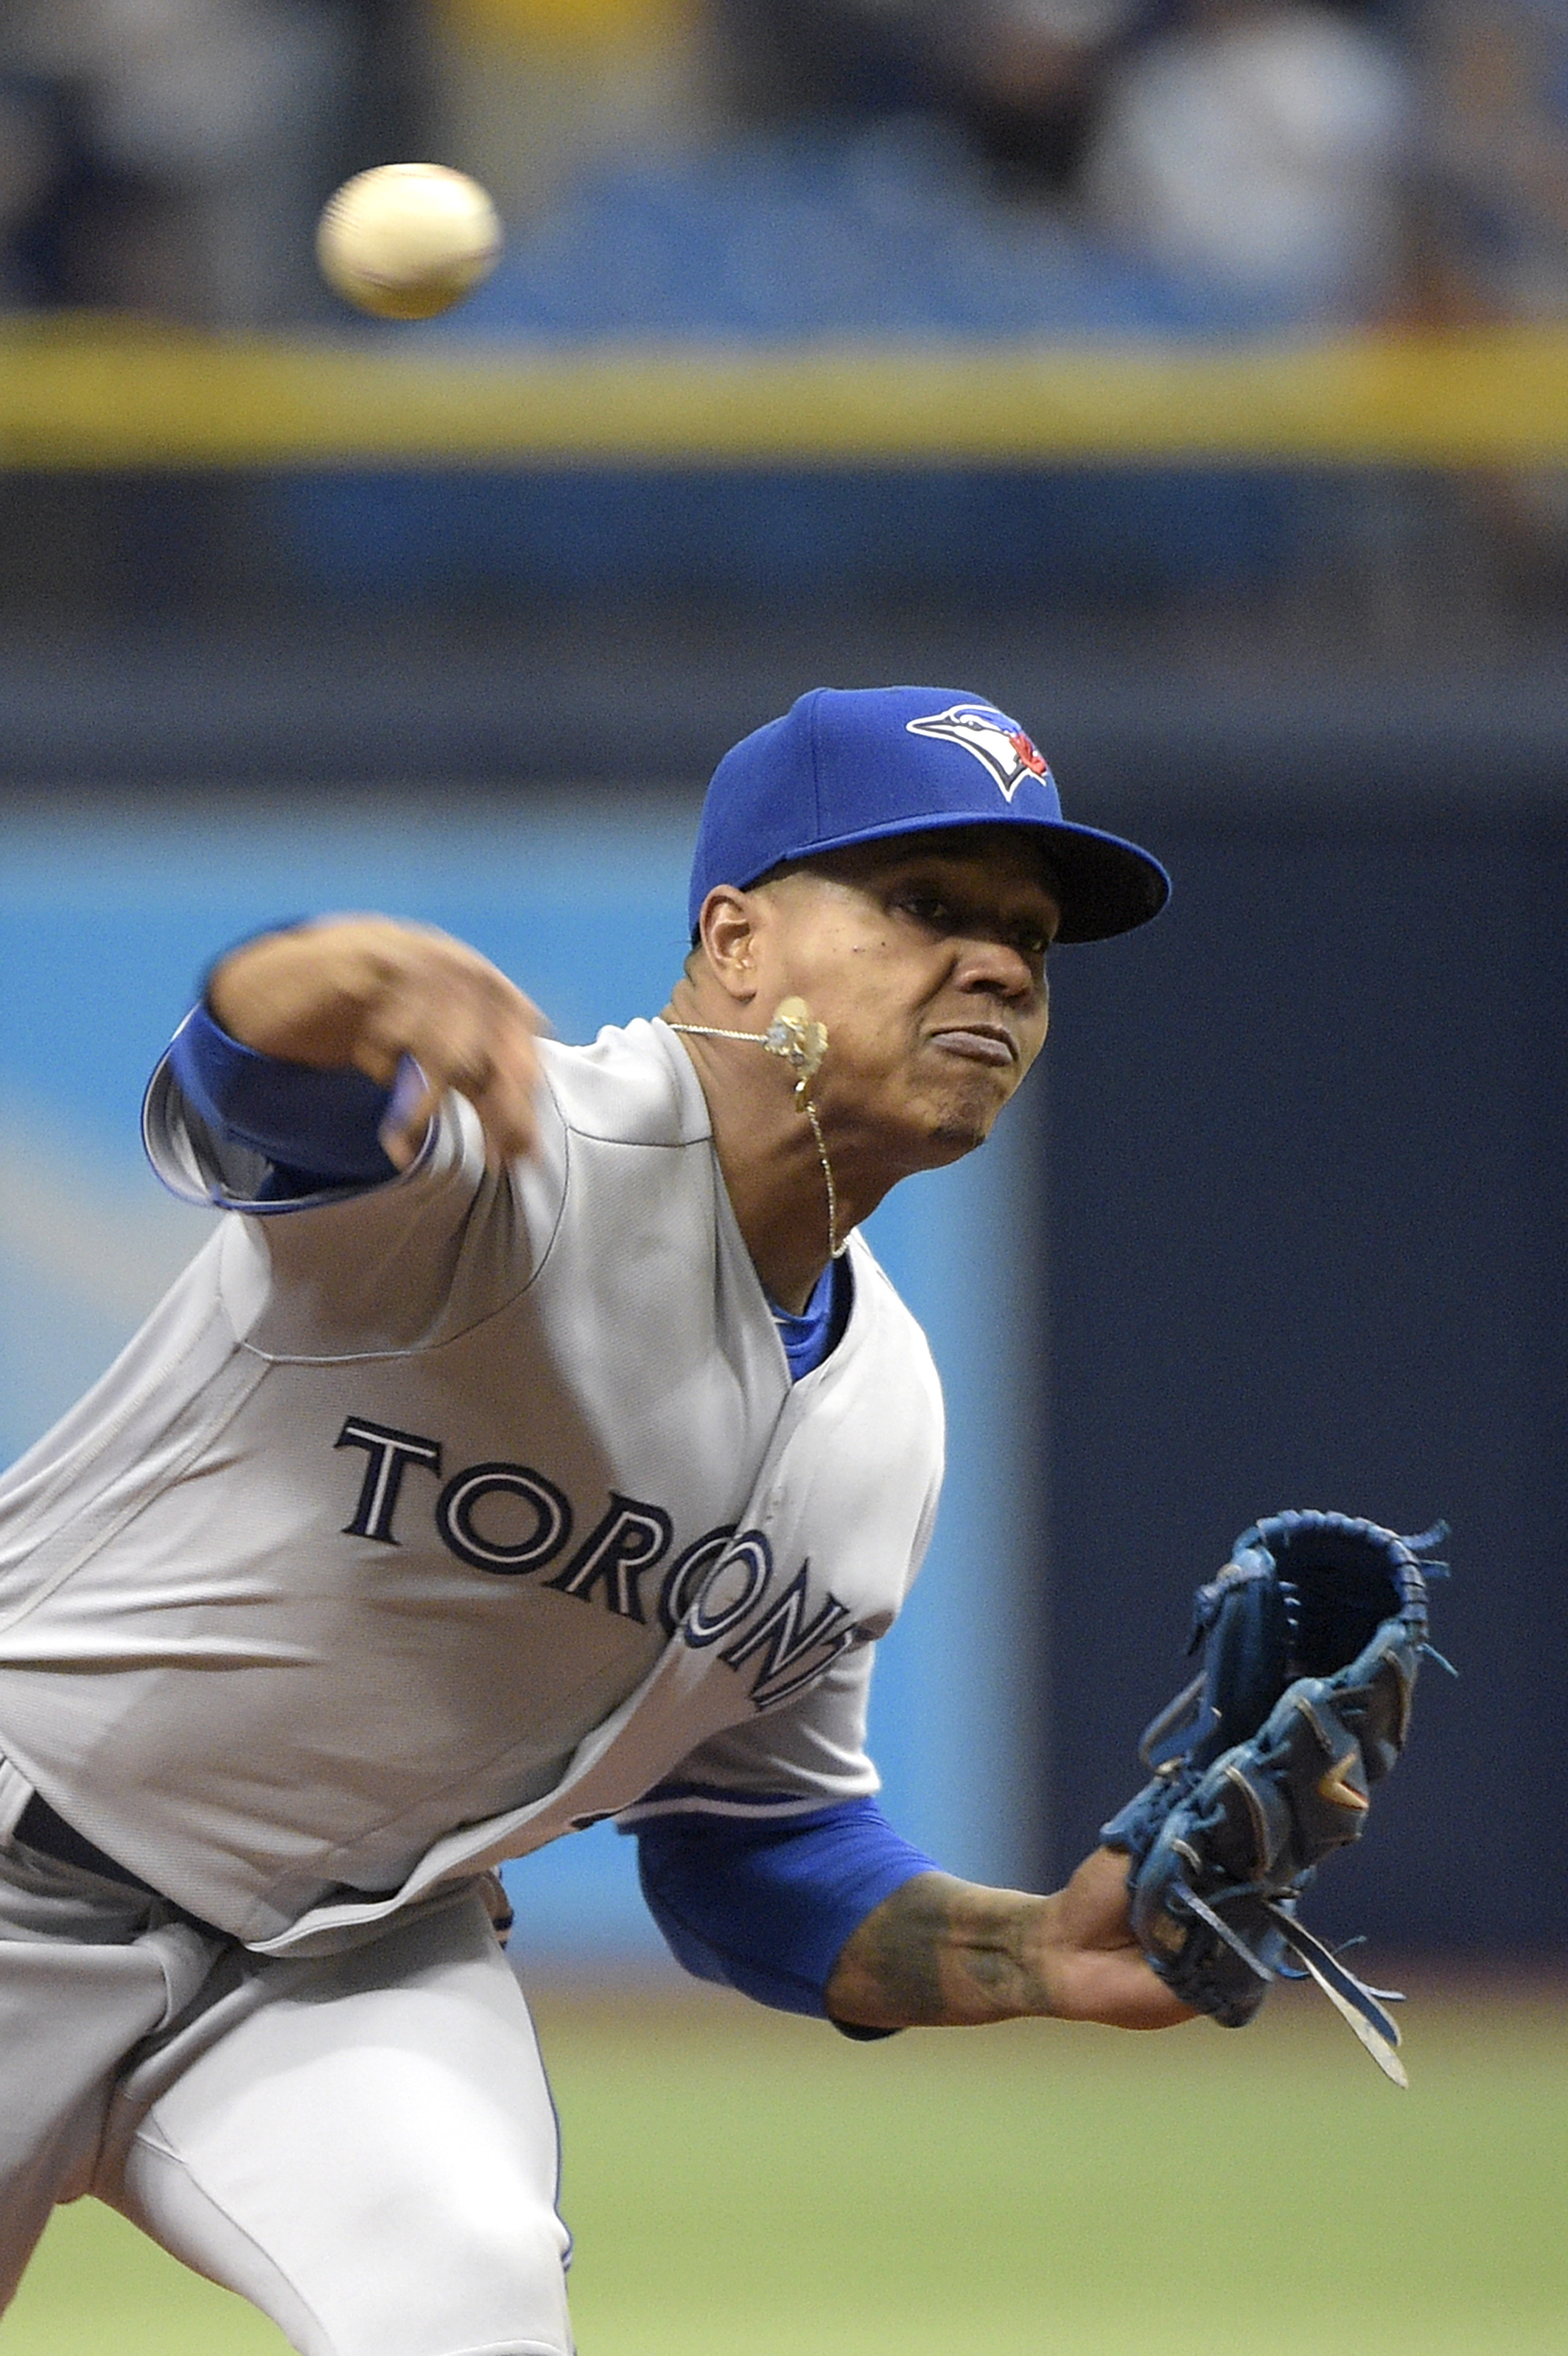 Toronto Blue Jays starting pitcher Marcus Stroman throws from the mound during the first inning of a baseball game against the Tampa Bay Rays in St. Petersburg, Fla., Sunday, May 1, 2016. (AP Photo/Phelan M. Ebenhack)